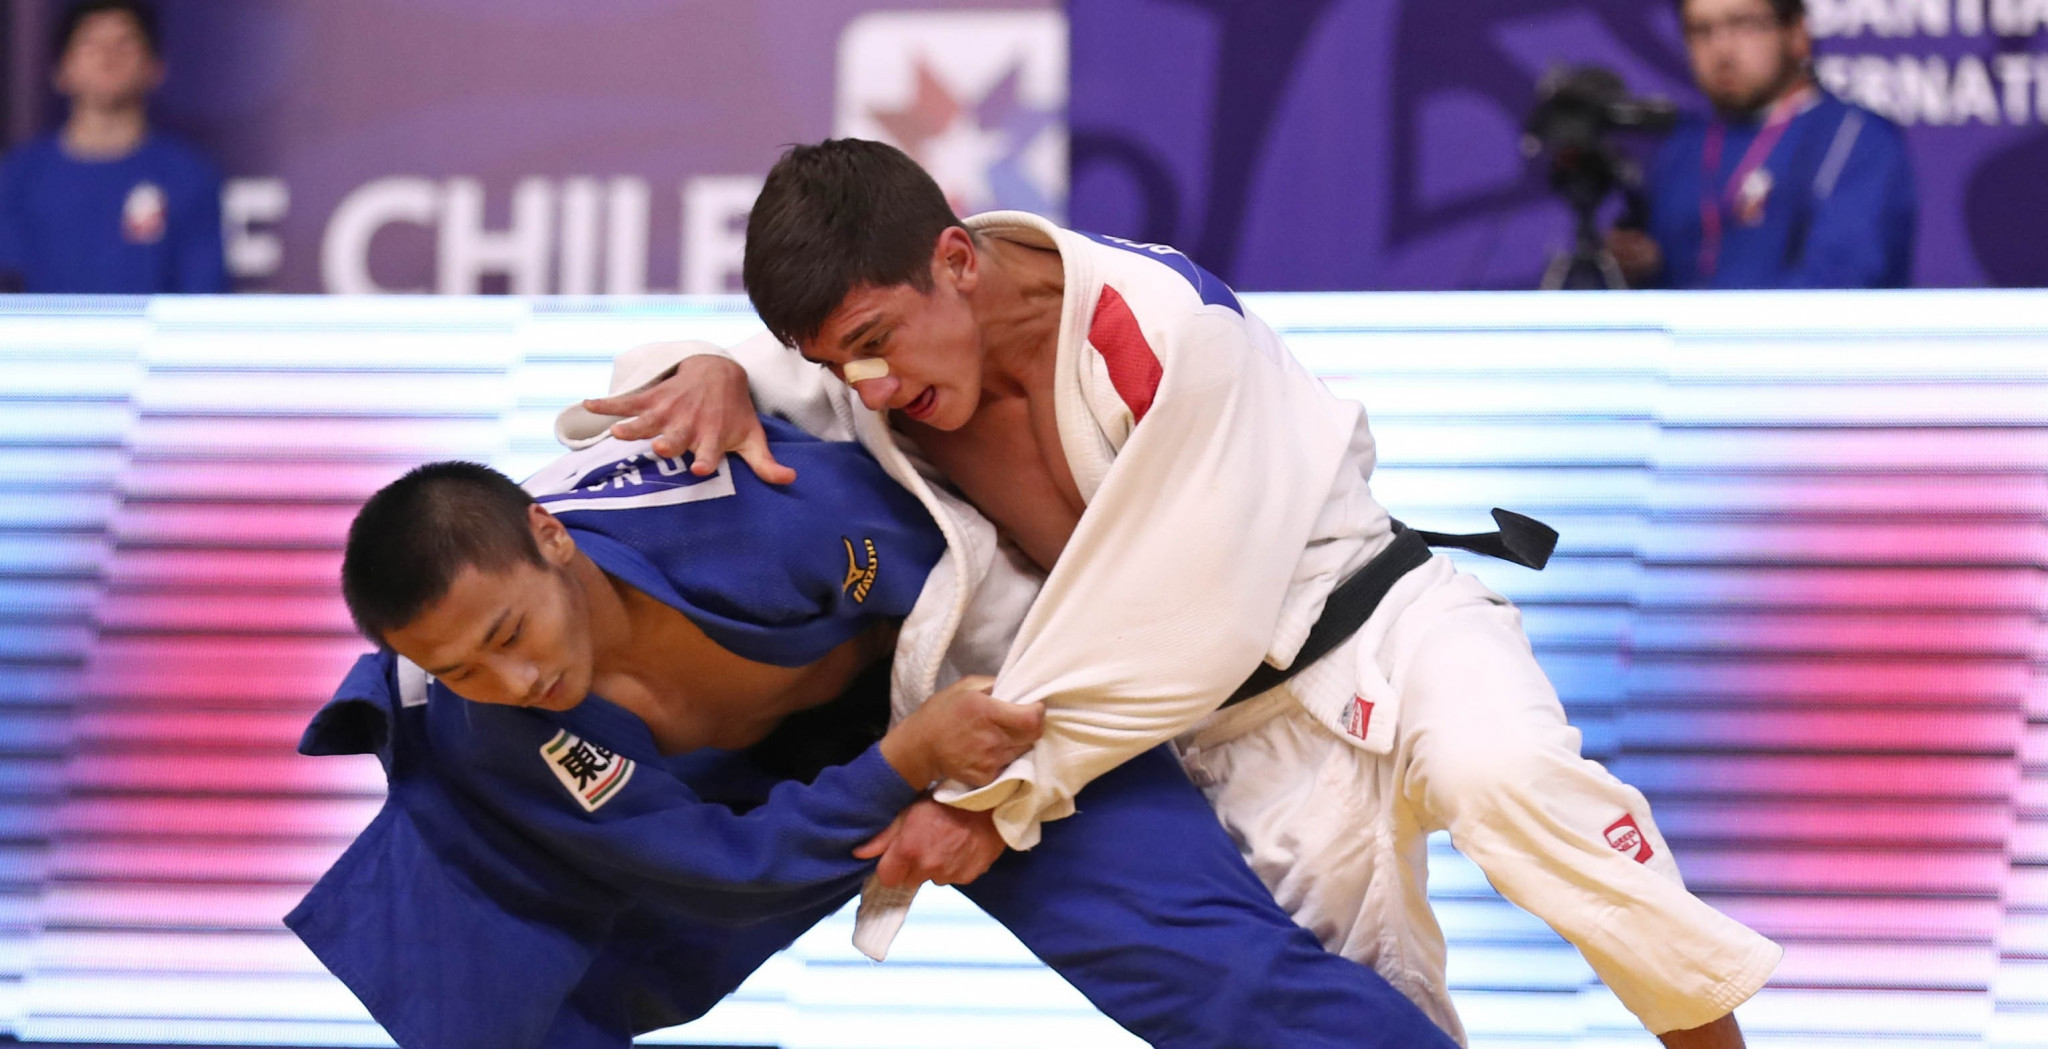 Lasha Bekauri successfully defended his title in the men's under-90kg category ©IJF/Mayorova Marina